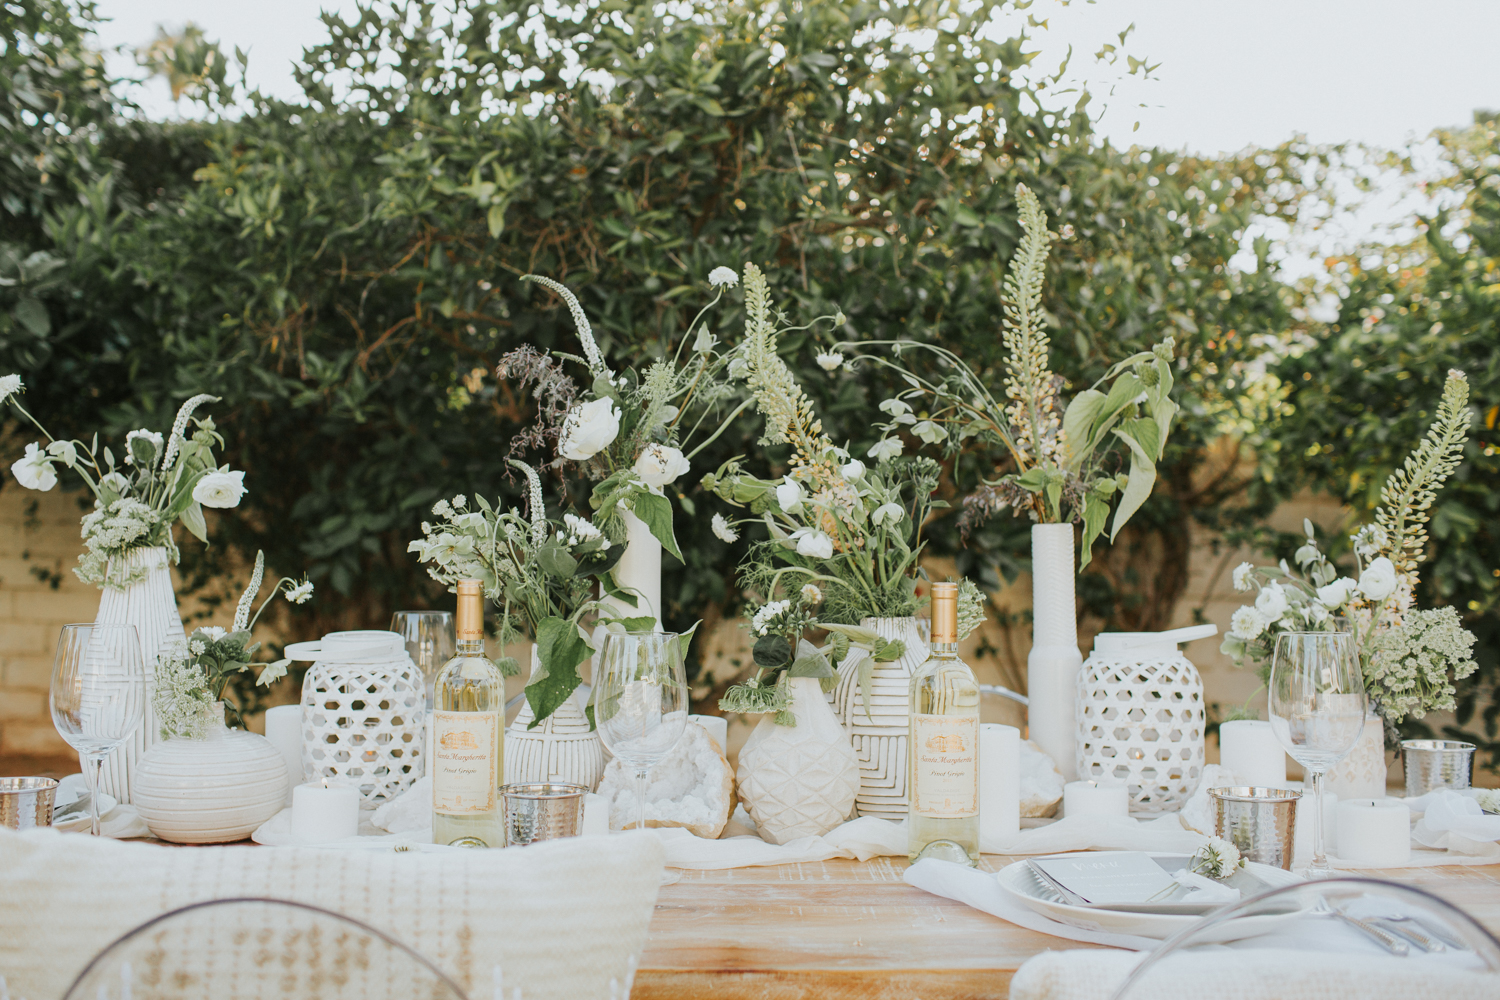 Ideas for an outdoor summer party   A Fabulous Fete